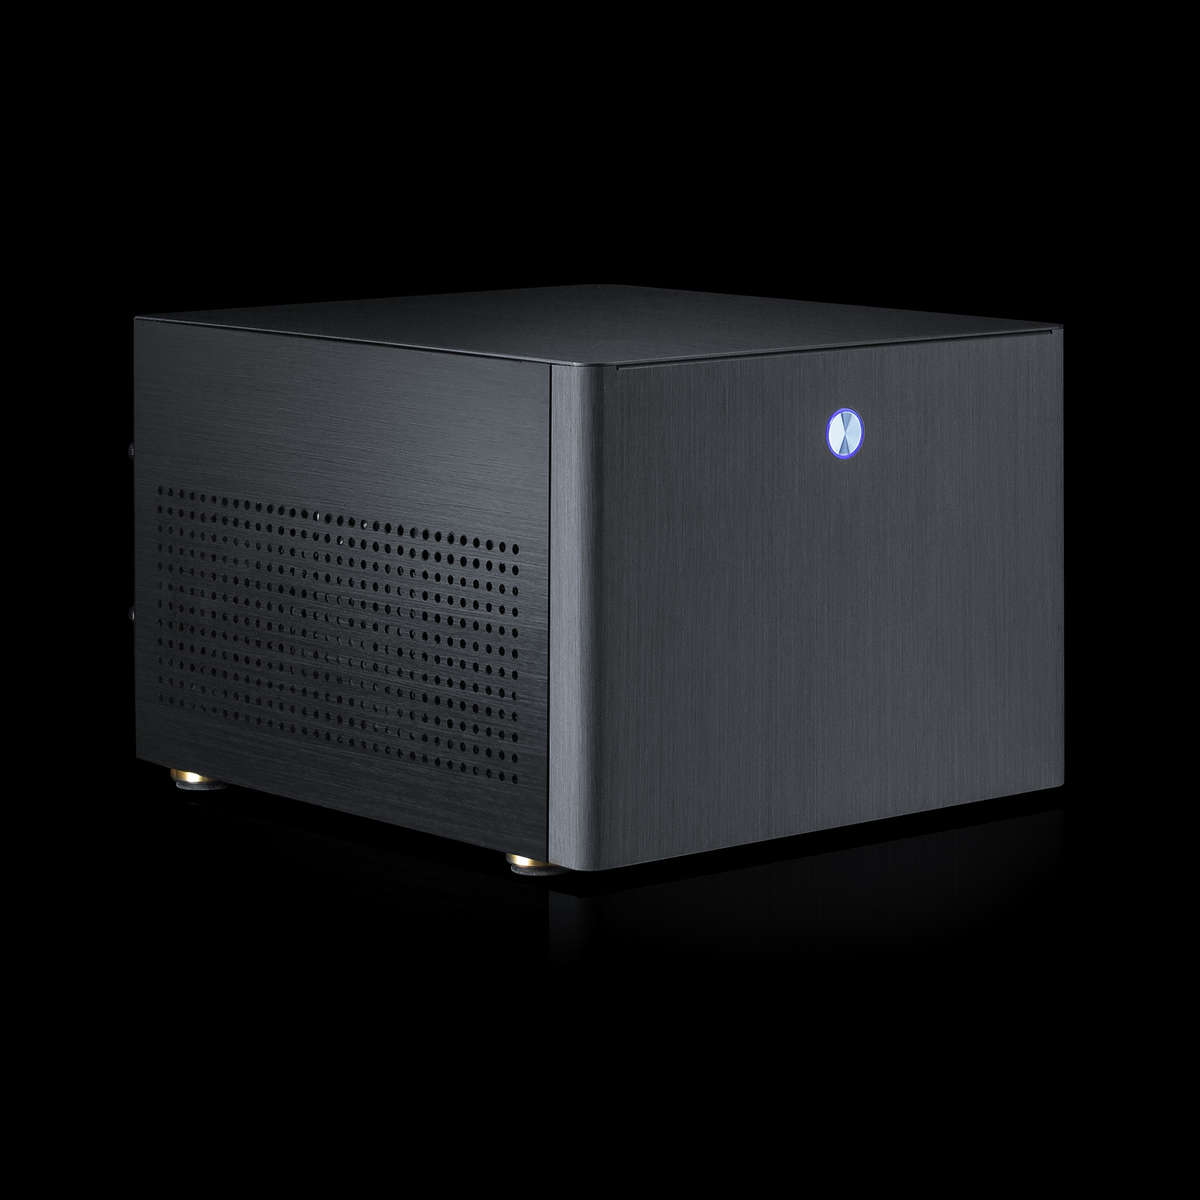 Chillblast Fusion V8 Micro Gaming PC - Outlet